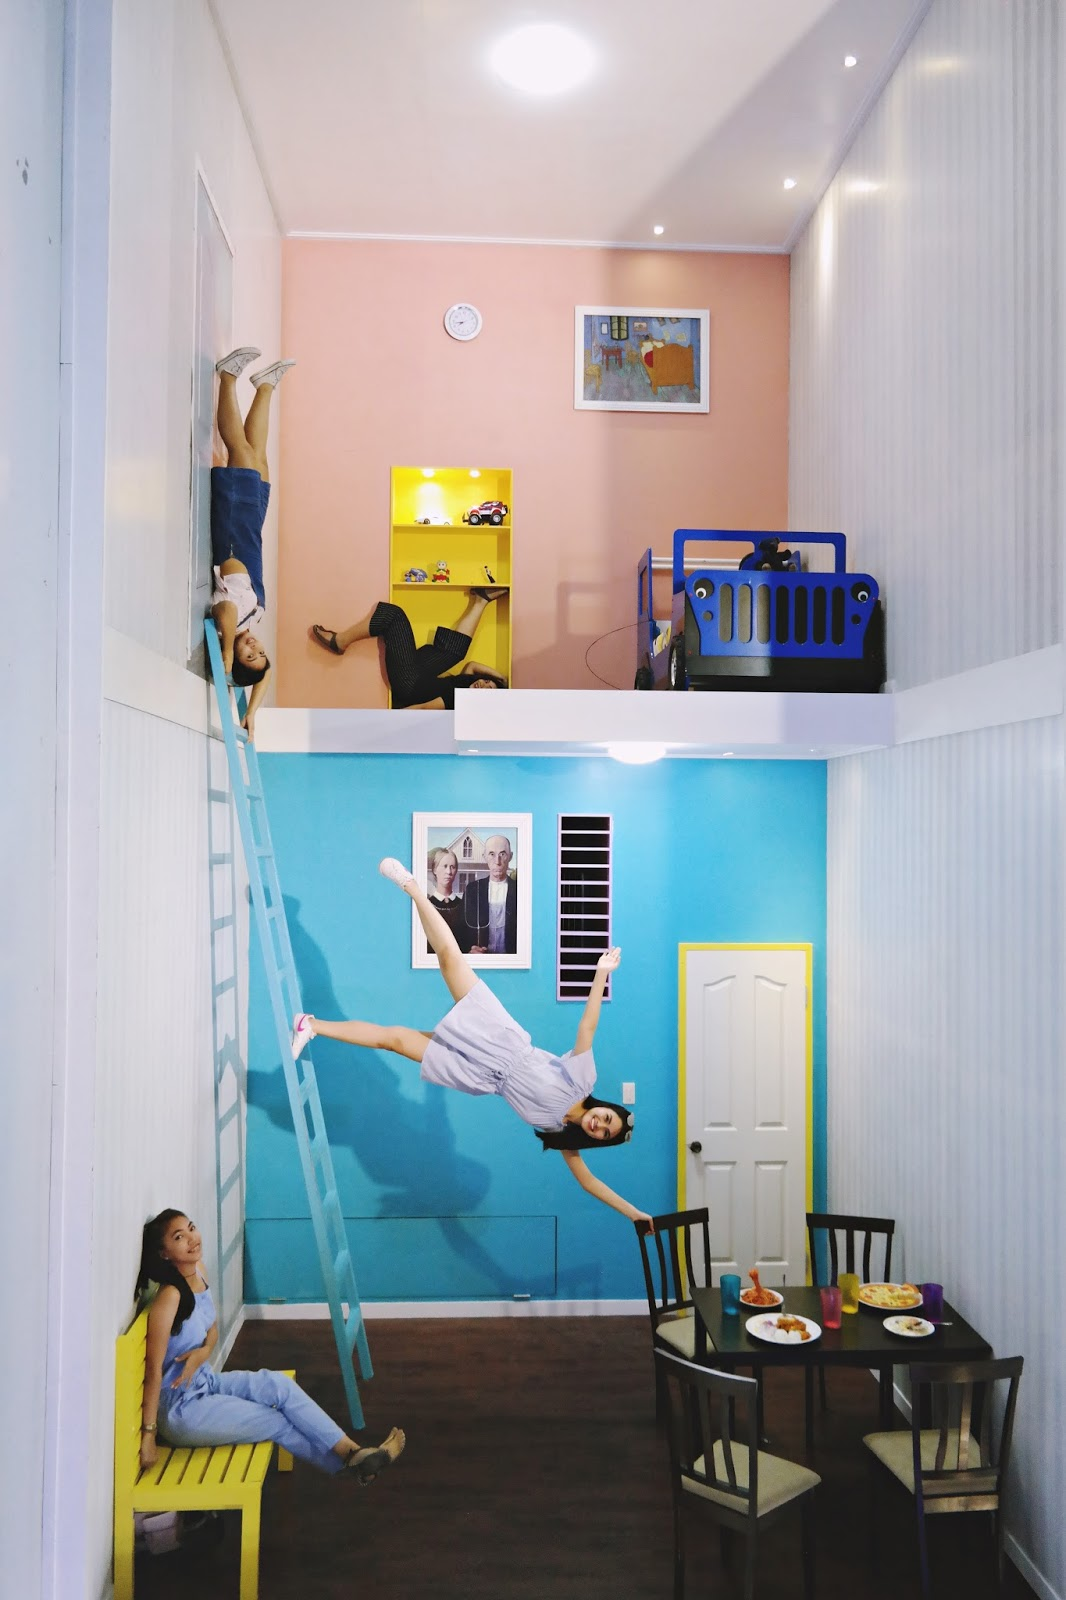 Day Dreamer And Believer: Upside Down Museum